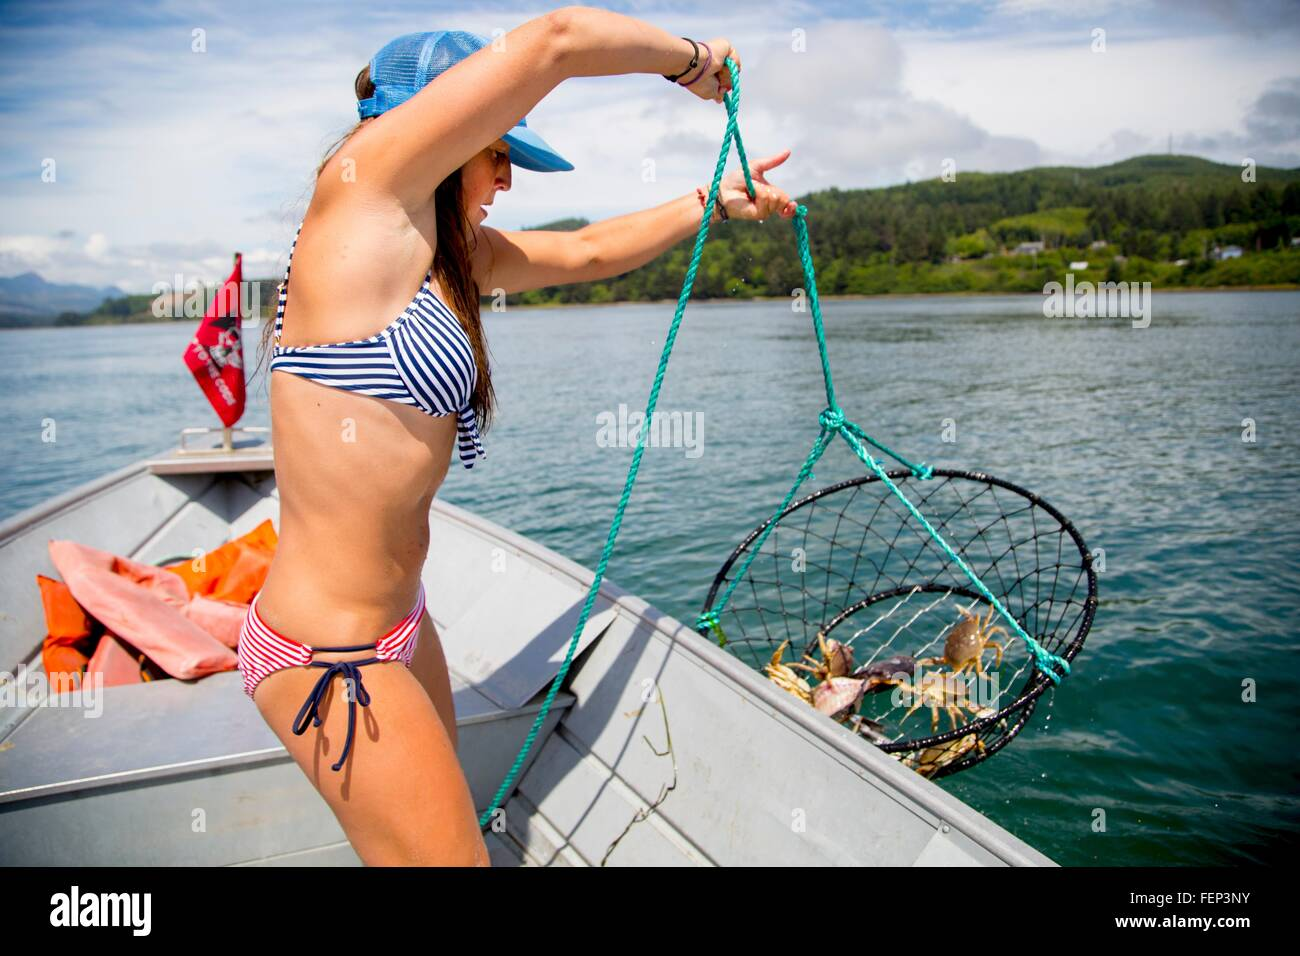 Young woman hauling in crab trap on fishing boat, Nehalem Bay, Oregon, USA - Stock Image